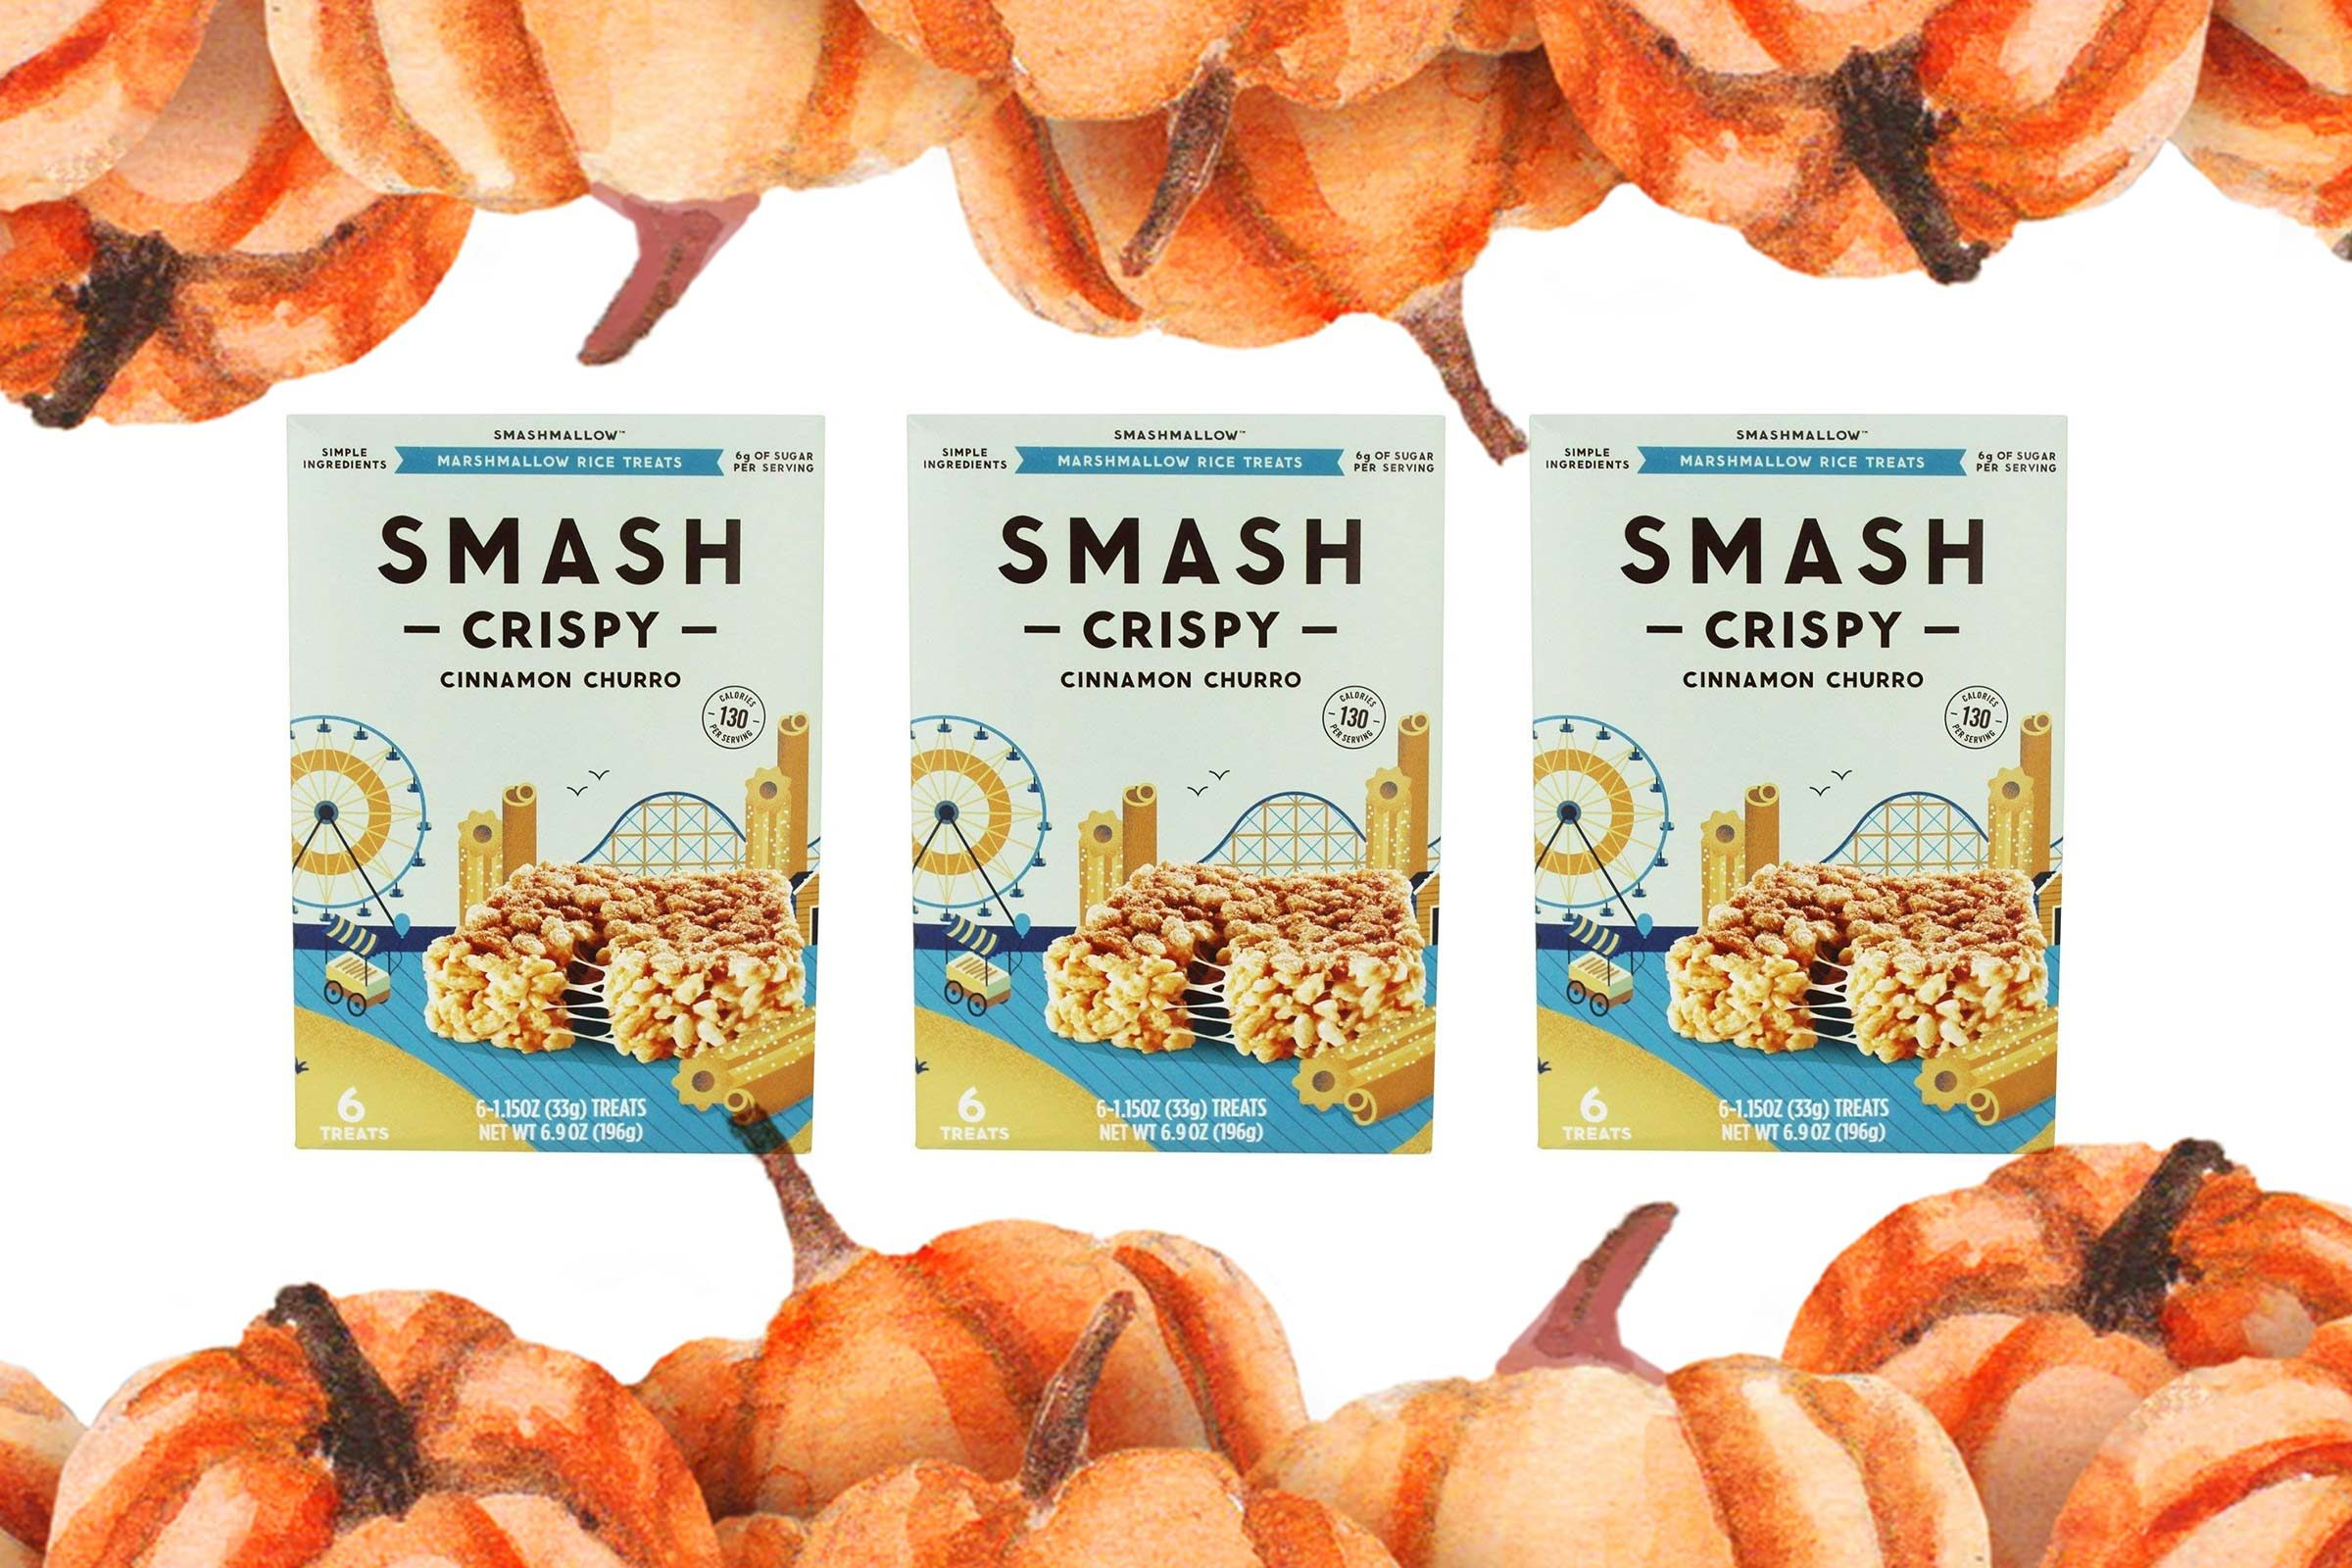 Smash Crispy treats